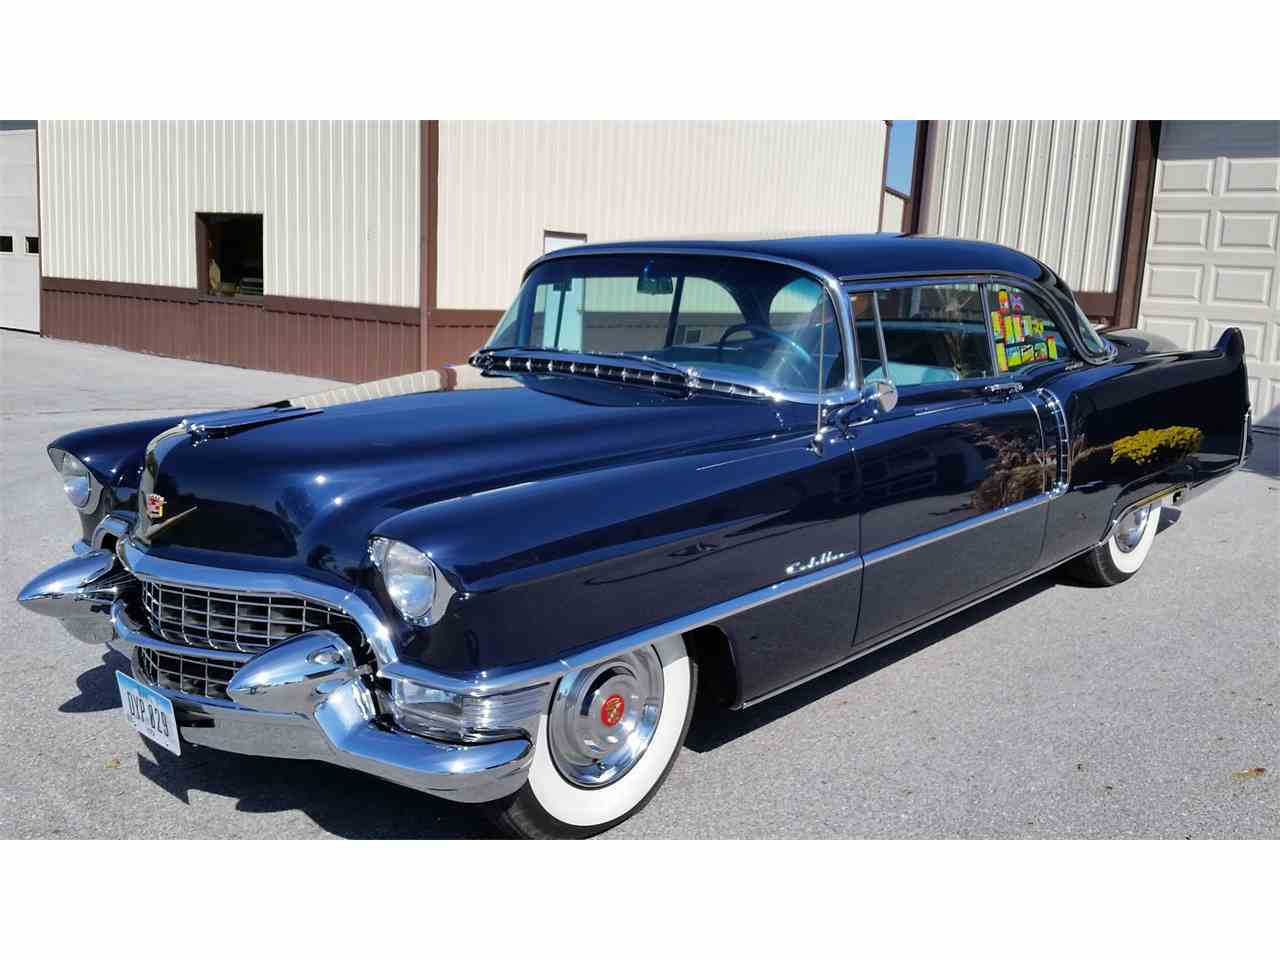 Old Cadillac Classic Cars